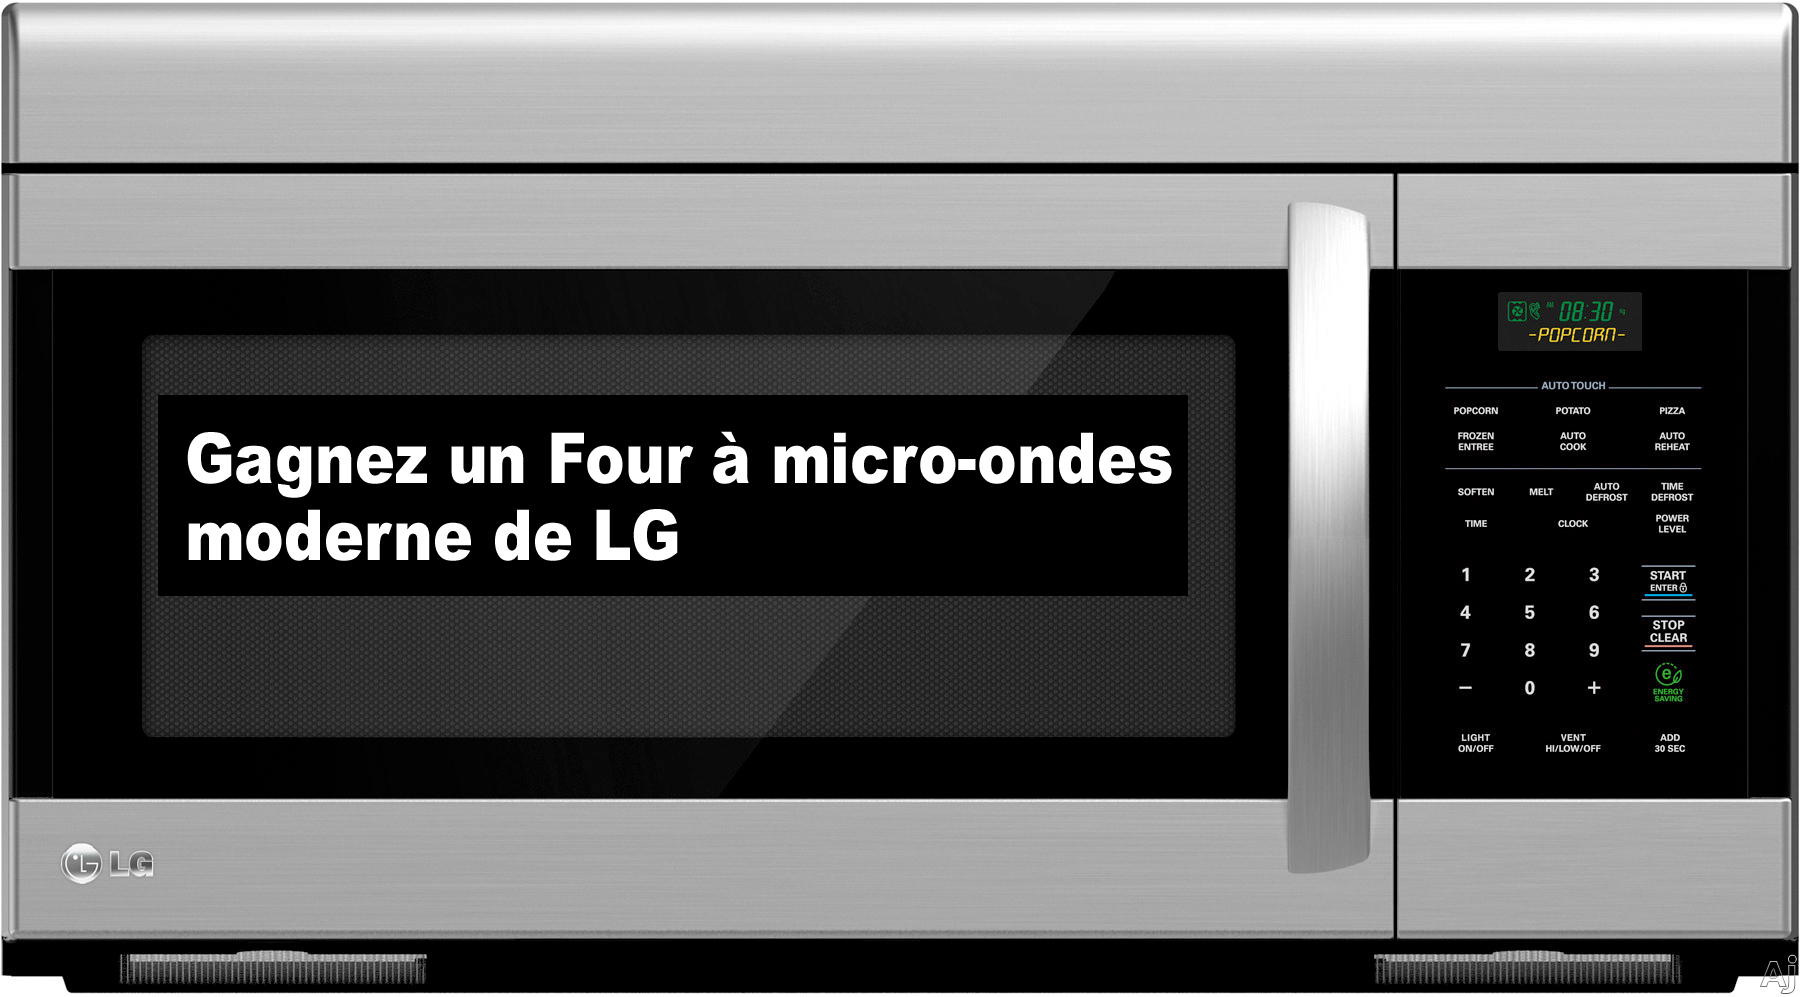 gagnez un four micro ondes avec hotte int gr e de lg. Black Bedroom Furniture Sets. Home Design Ideas